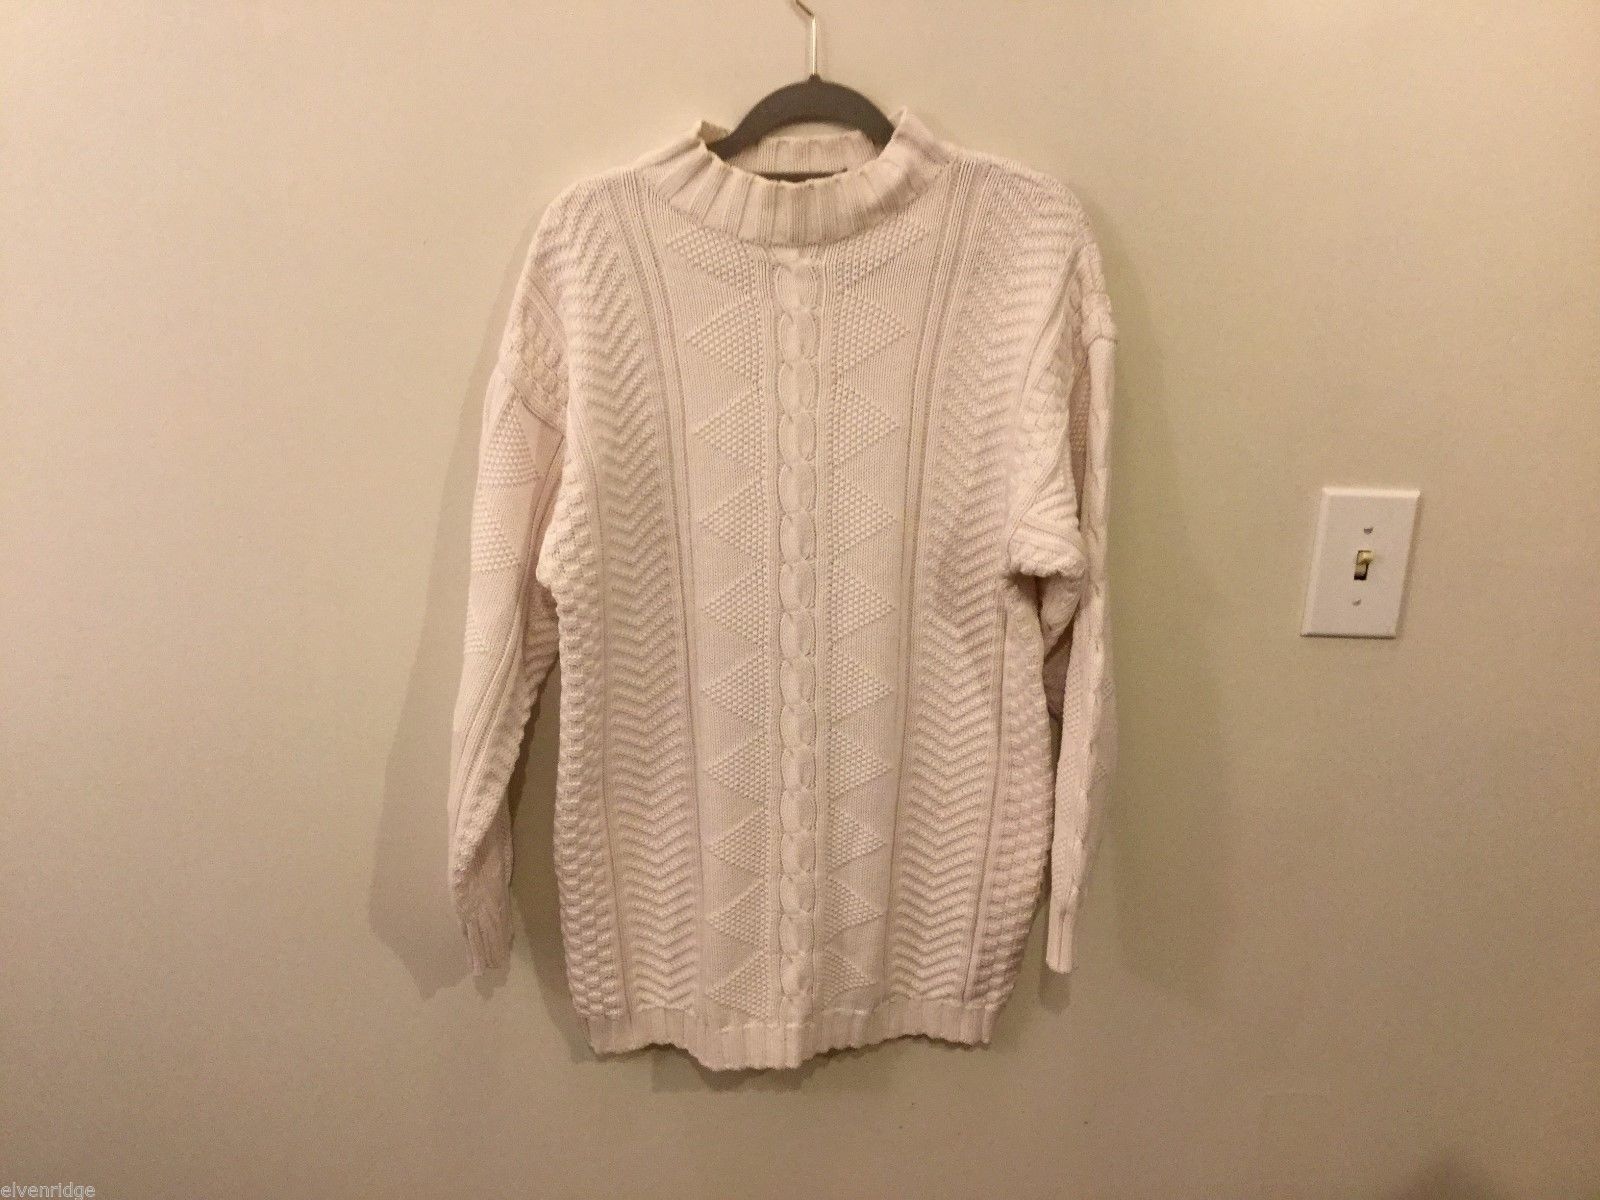 Womens Lizwear White Collared Sweater, Size Small